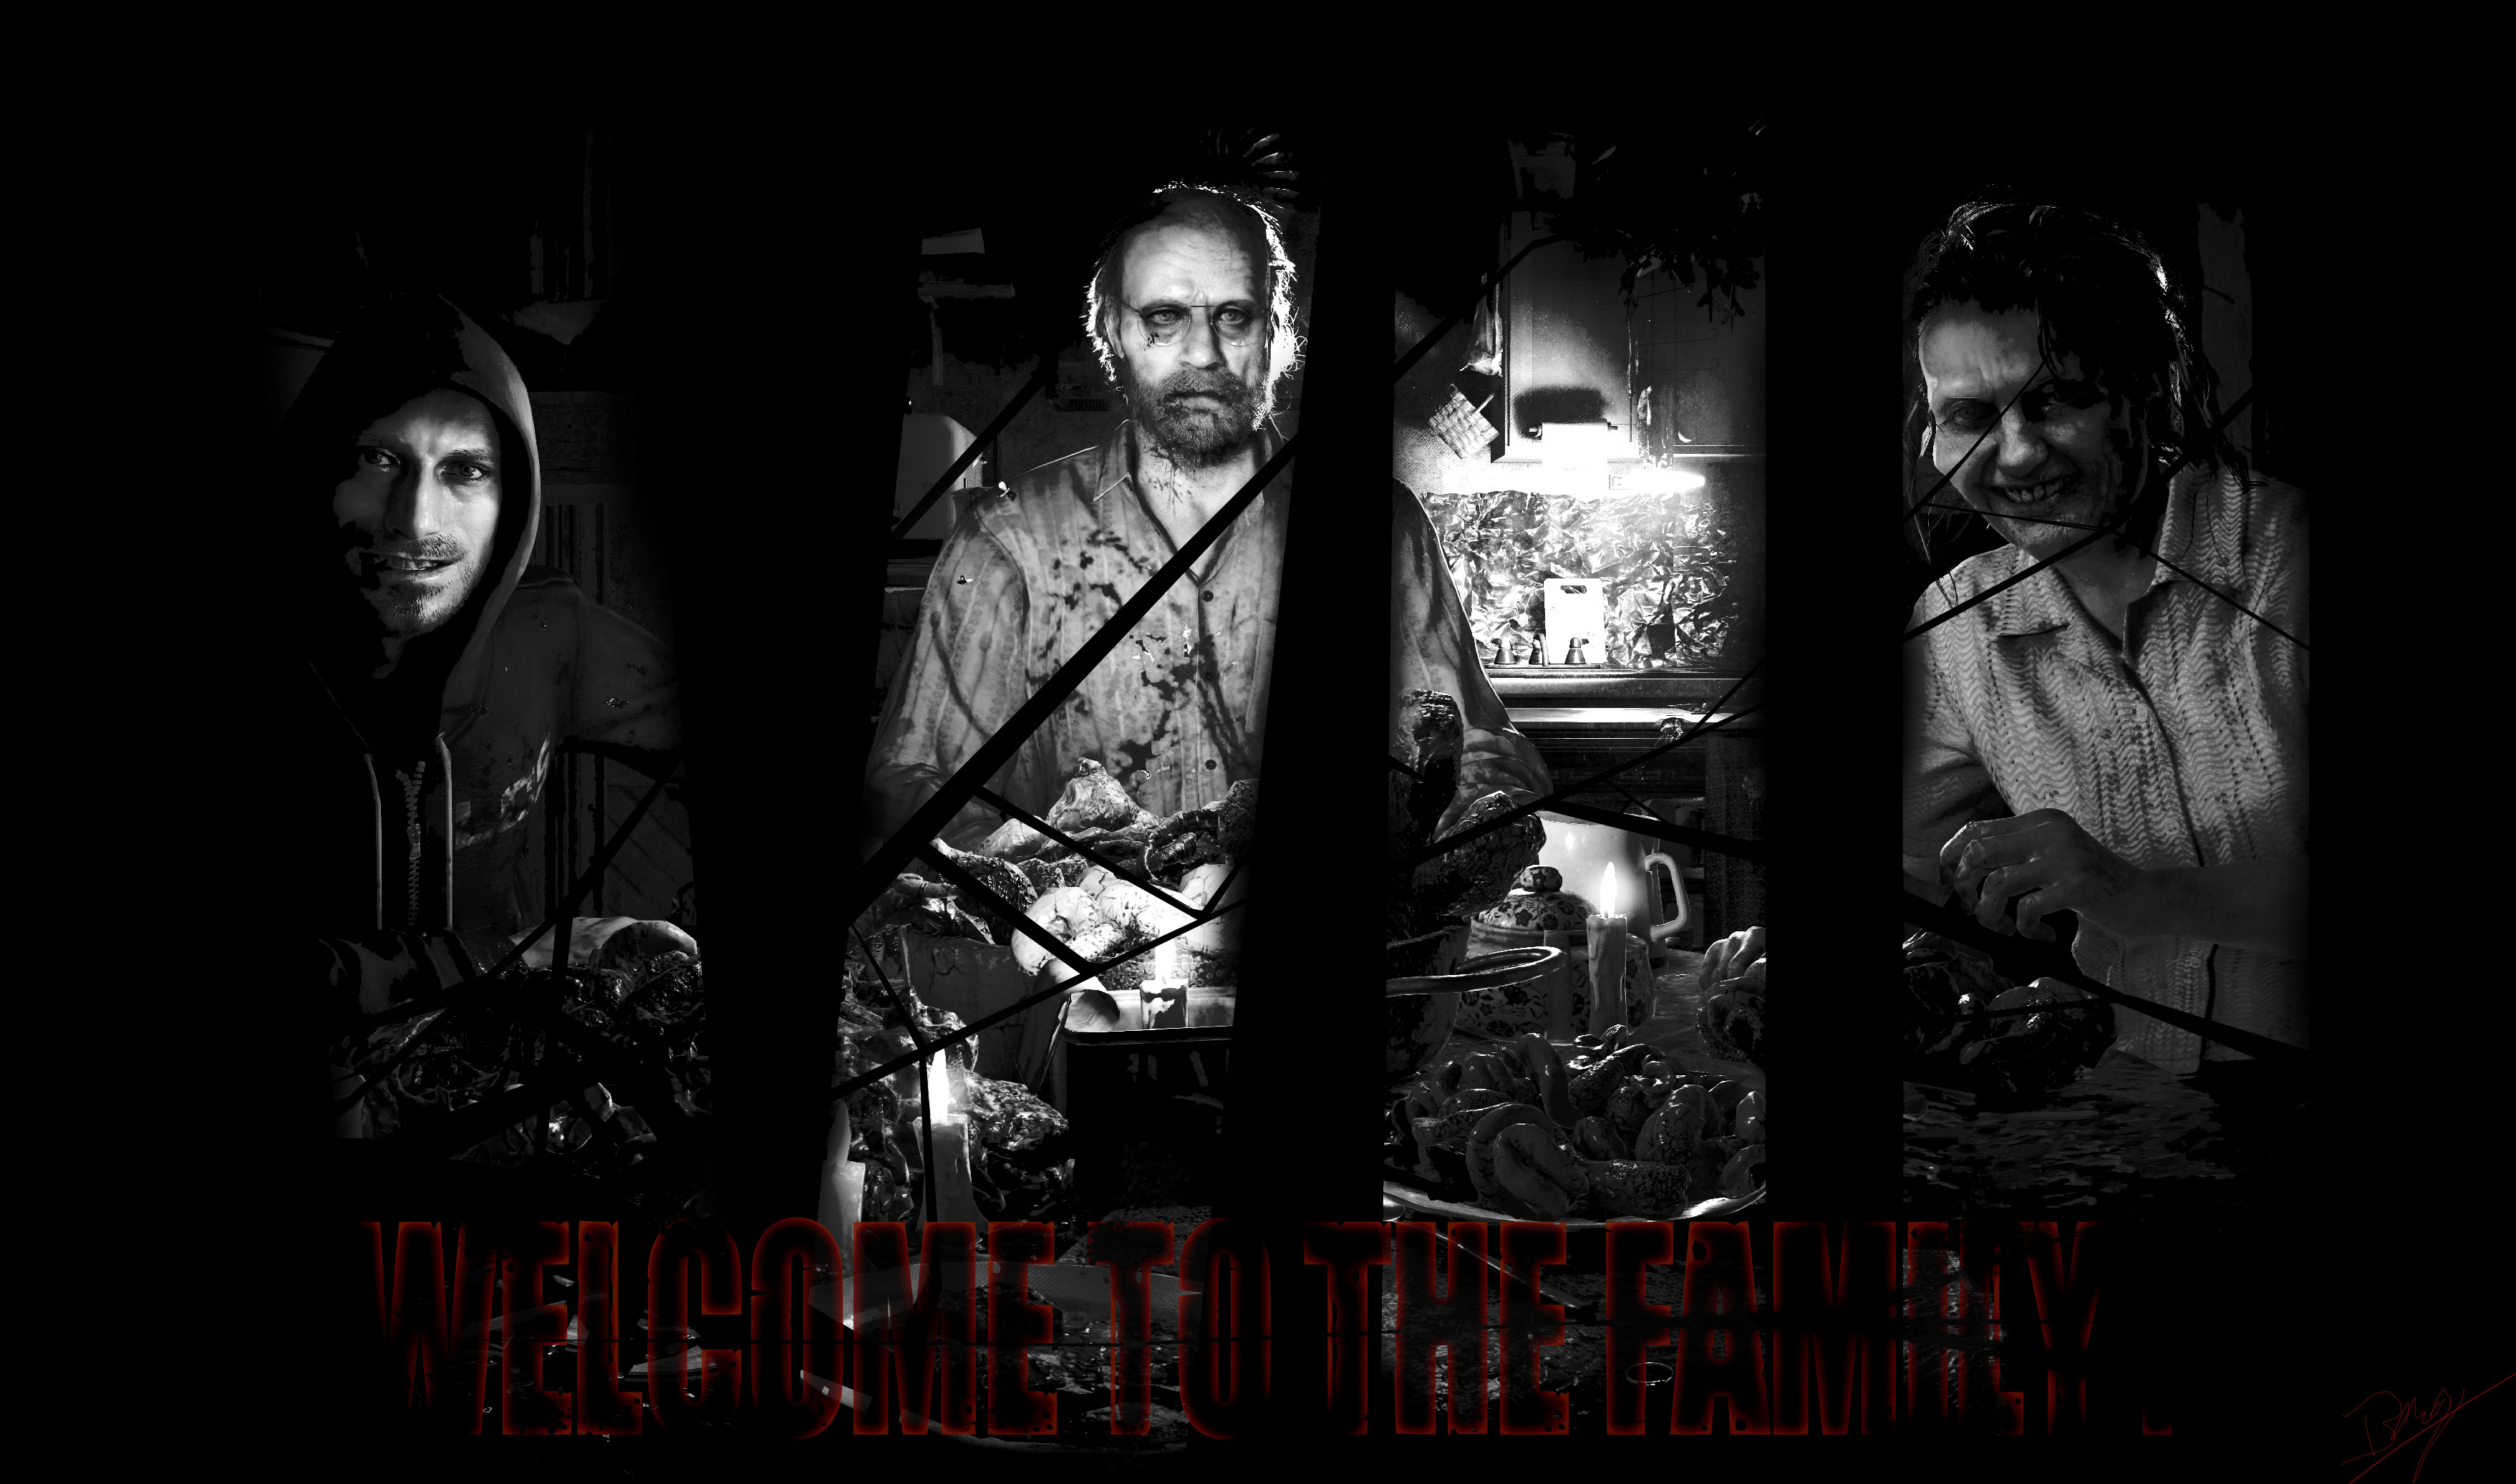 Resident Evil 7 Background Family By French97 On Deviantart